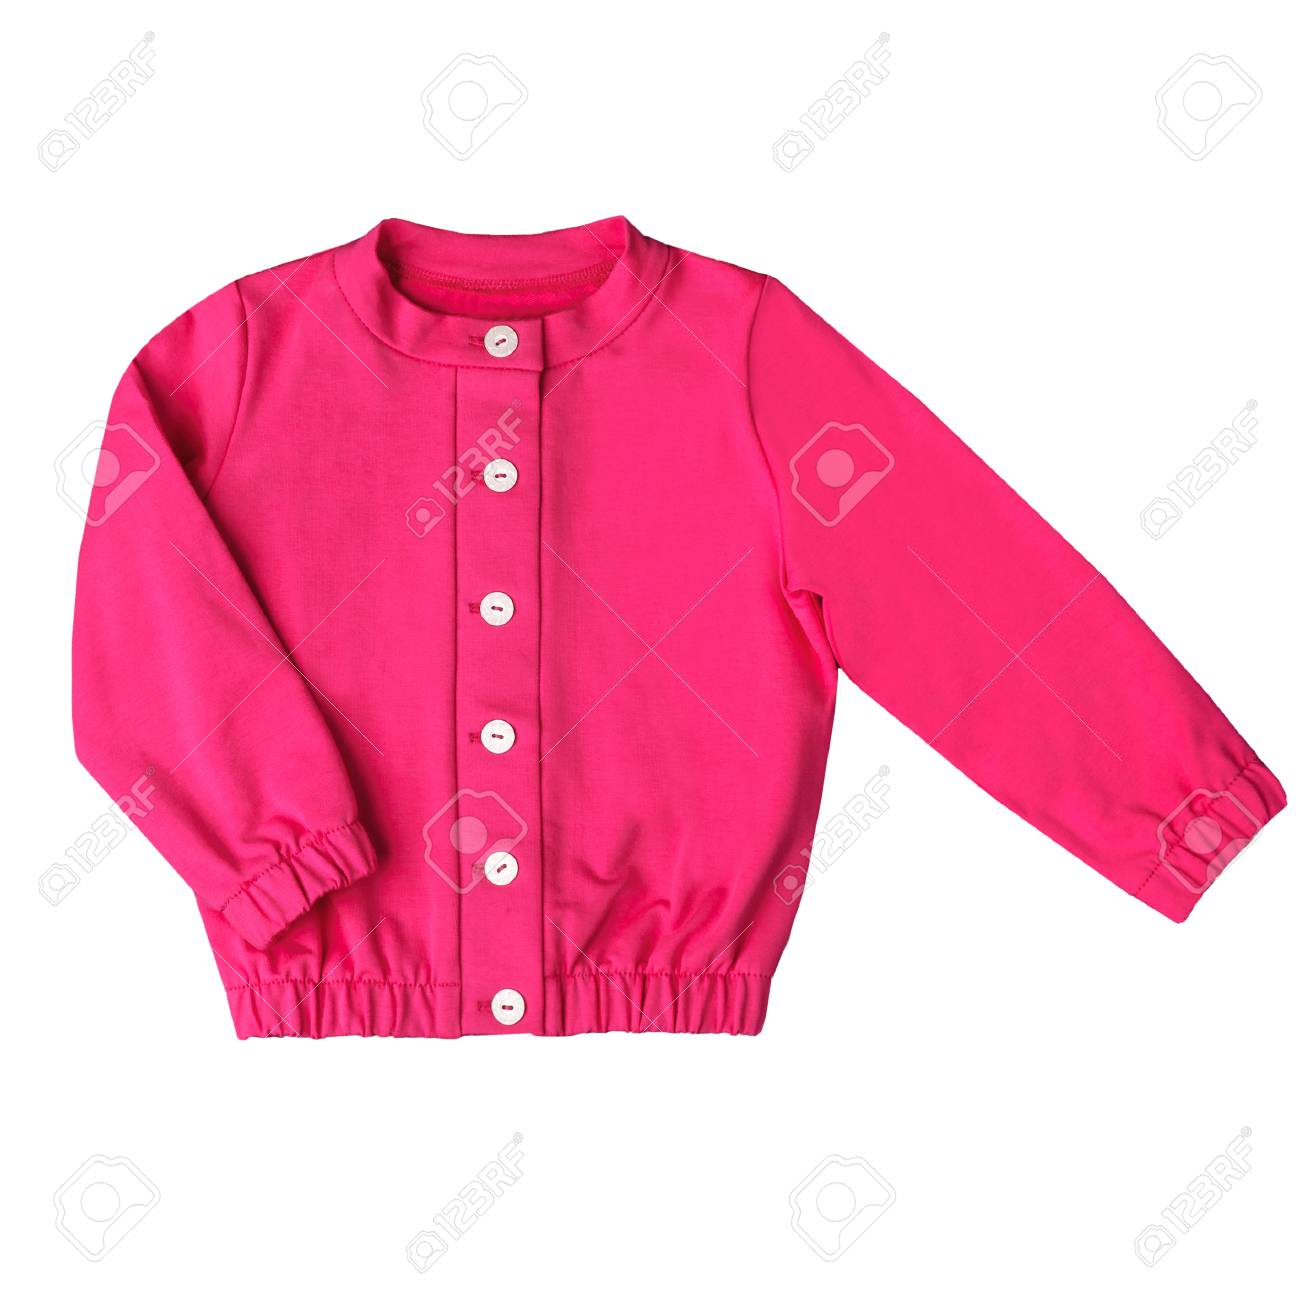 7bed4c63d75a Jacket For Children Of School Age Isolated On A White Background ...